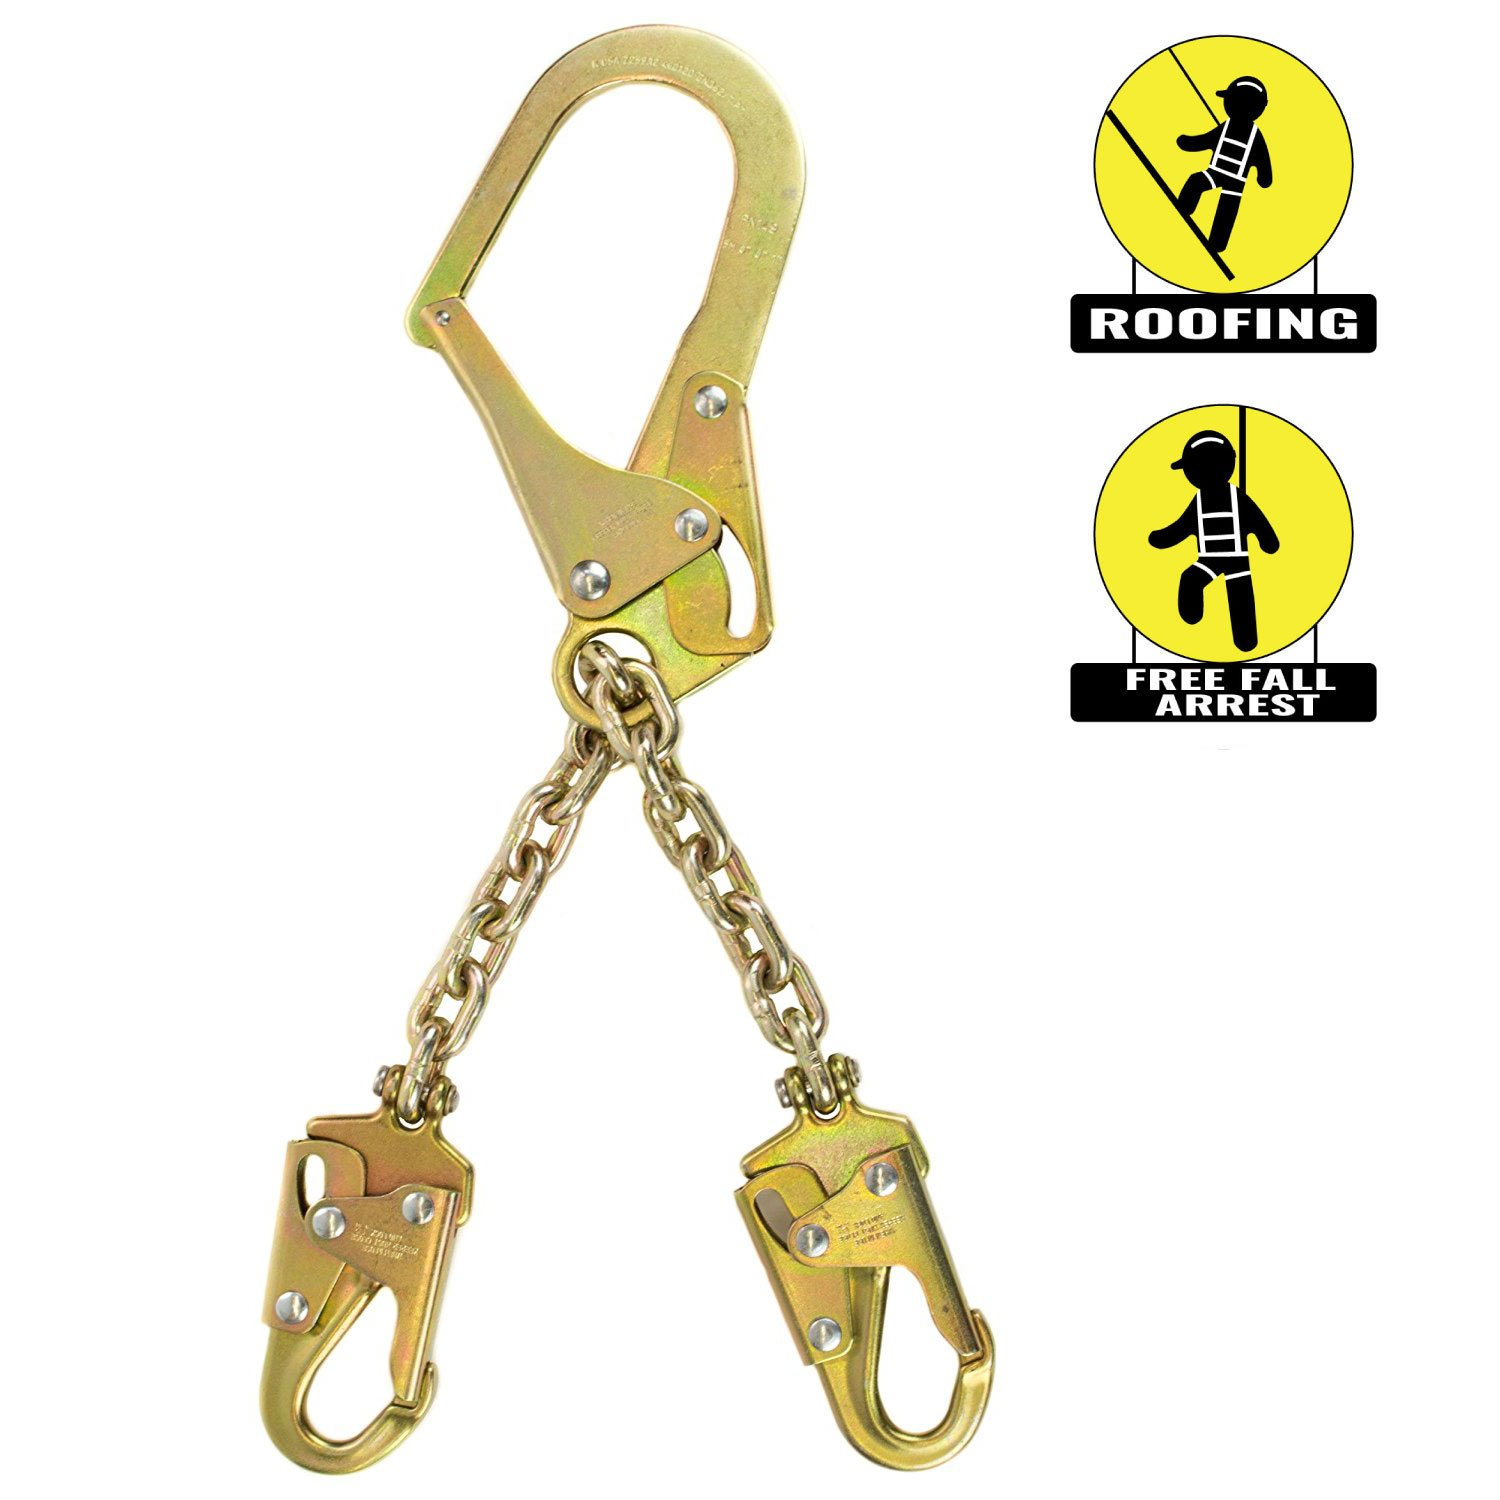 Spidergard SPL-RC01 Rebar Chain Assembly for Positioning with Two Snap Hooks by Spidergard